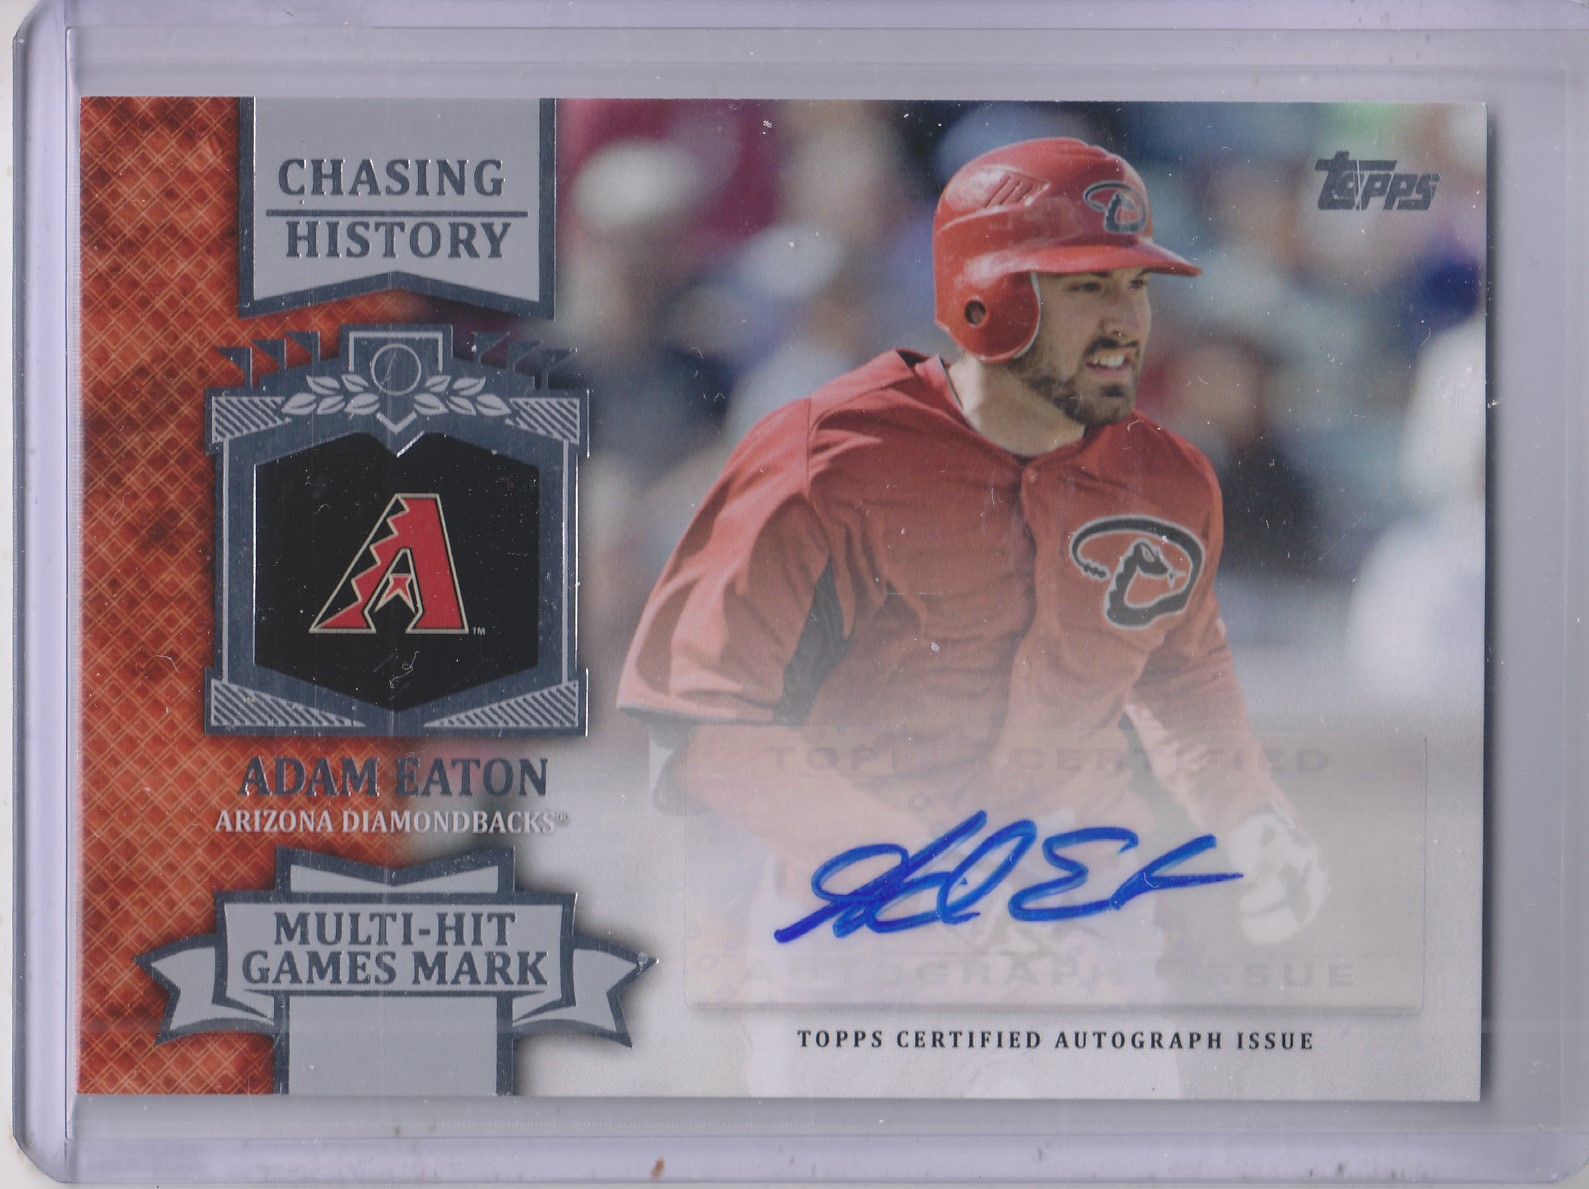 2013 Topps Chasing History Autographs #AE Adam Eaton UPD